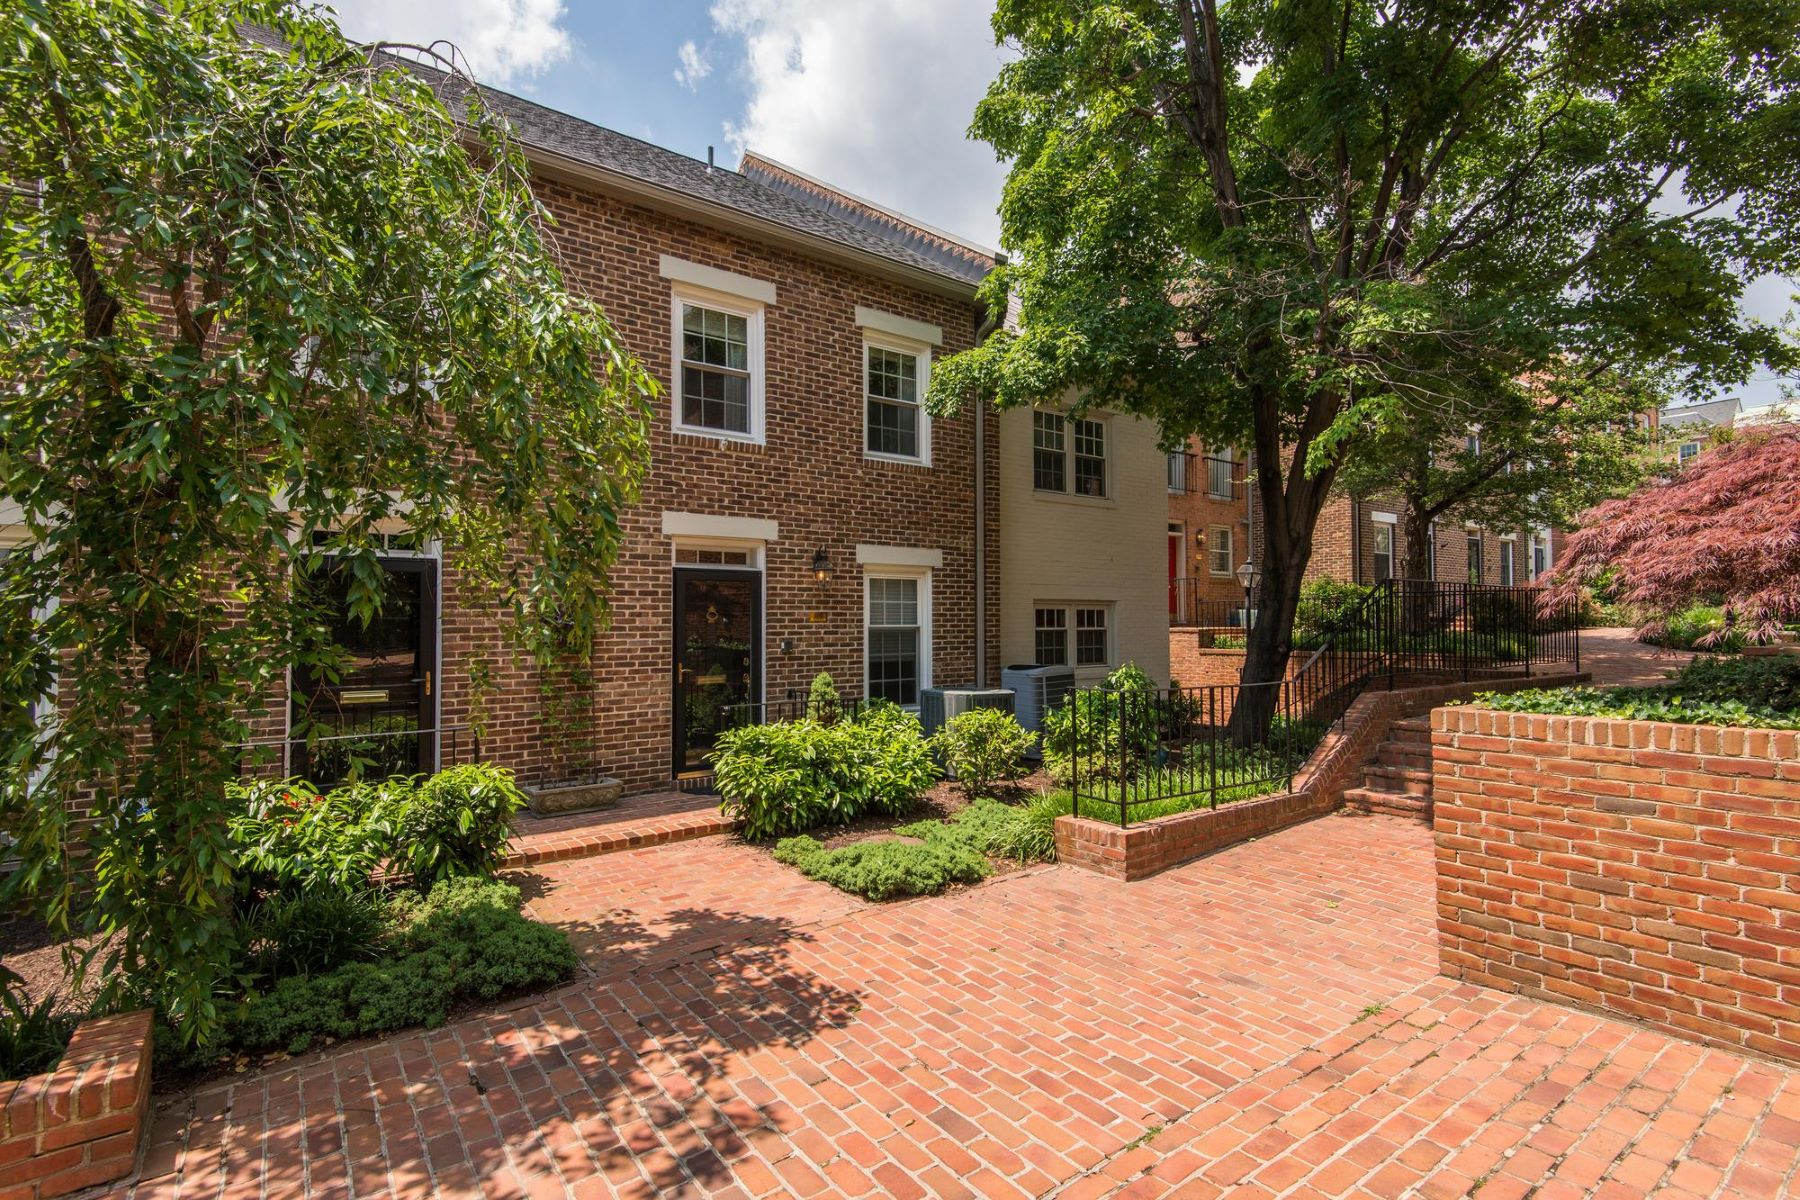 Townhouse for Rent at 1168 Pitt St N 1168 Pitt St N Alexandria, Virginia 22314 United States